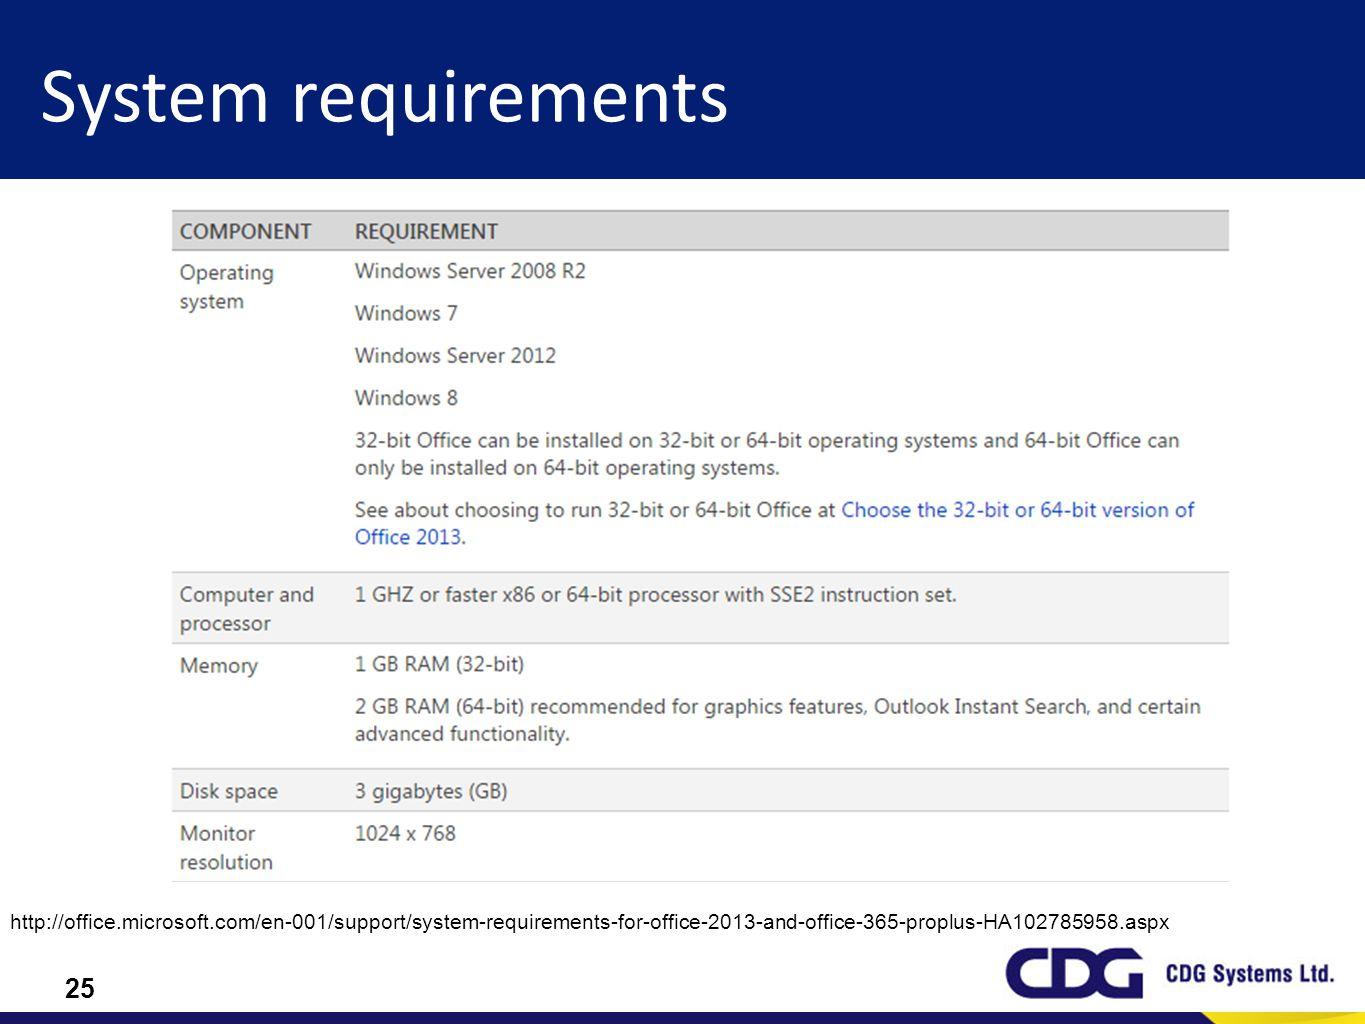 System requirements http://office.microsoft.com/en-001/support/system-requirements-for-office-2013-and-office-365-proplus-HA102785958.aspx.